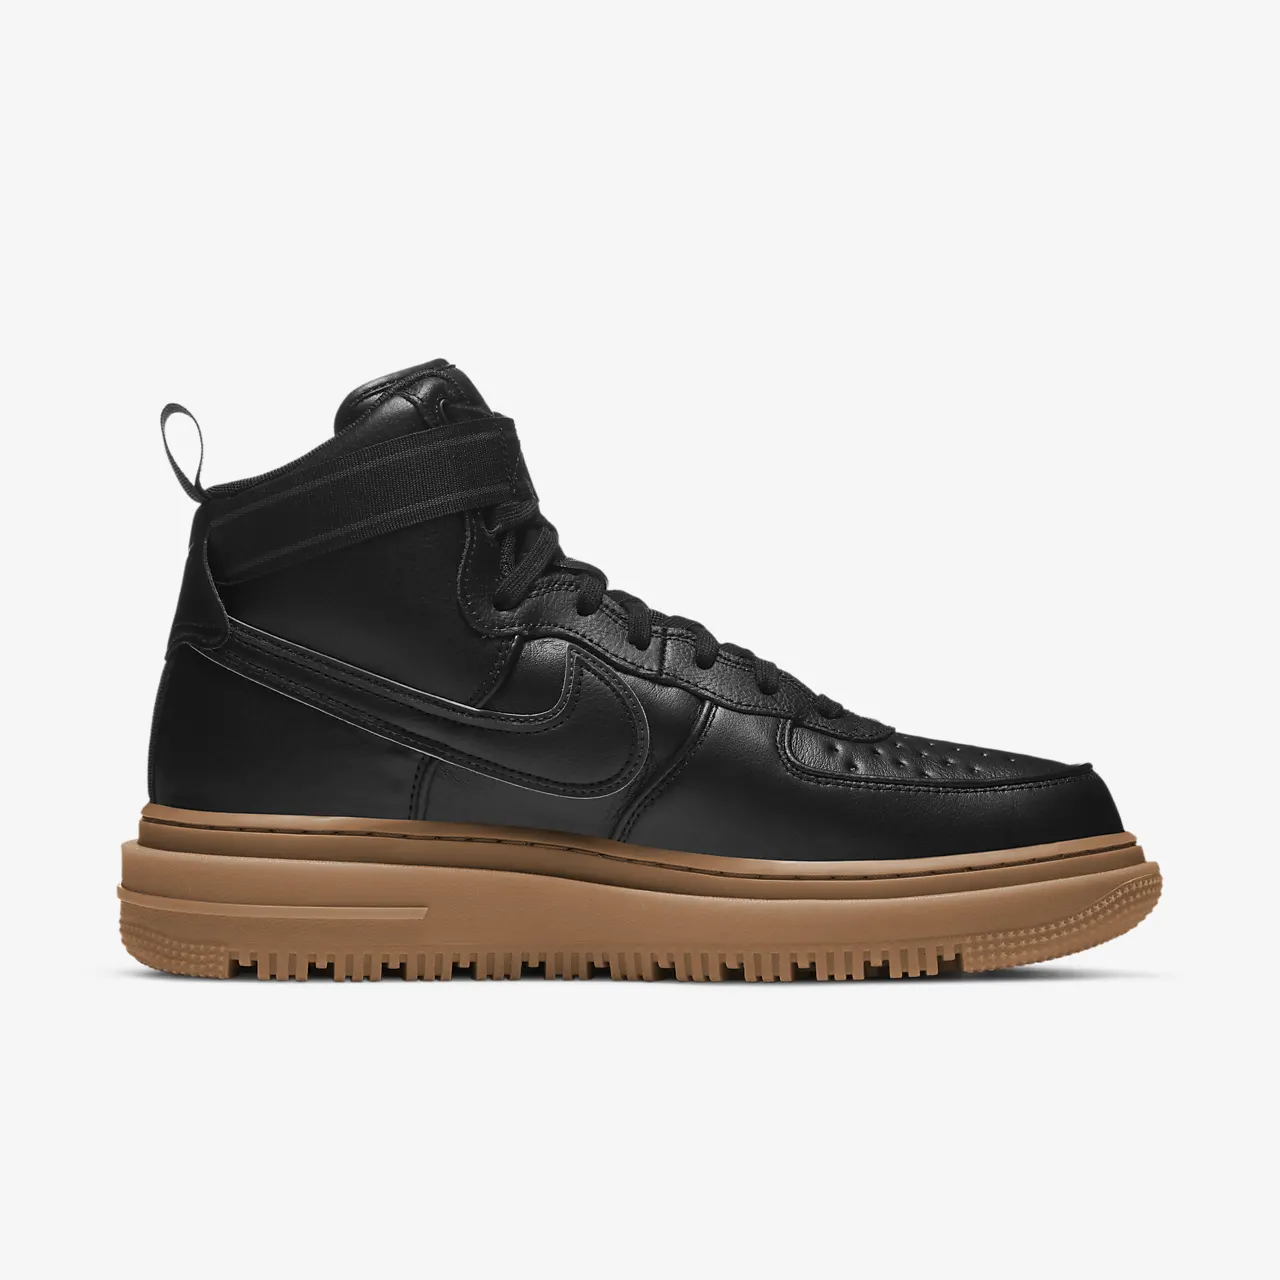 유럽직배송 나이키 NIKE Nike Air Force 1 GTX Boot Boot CT2815-001